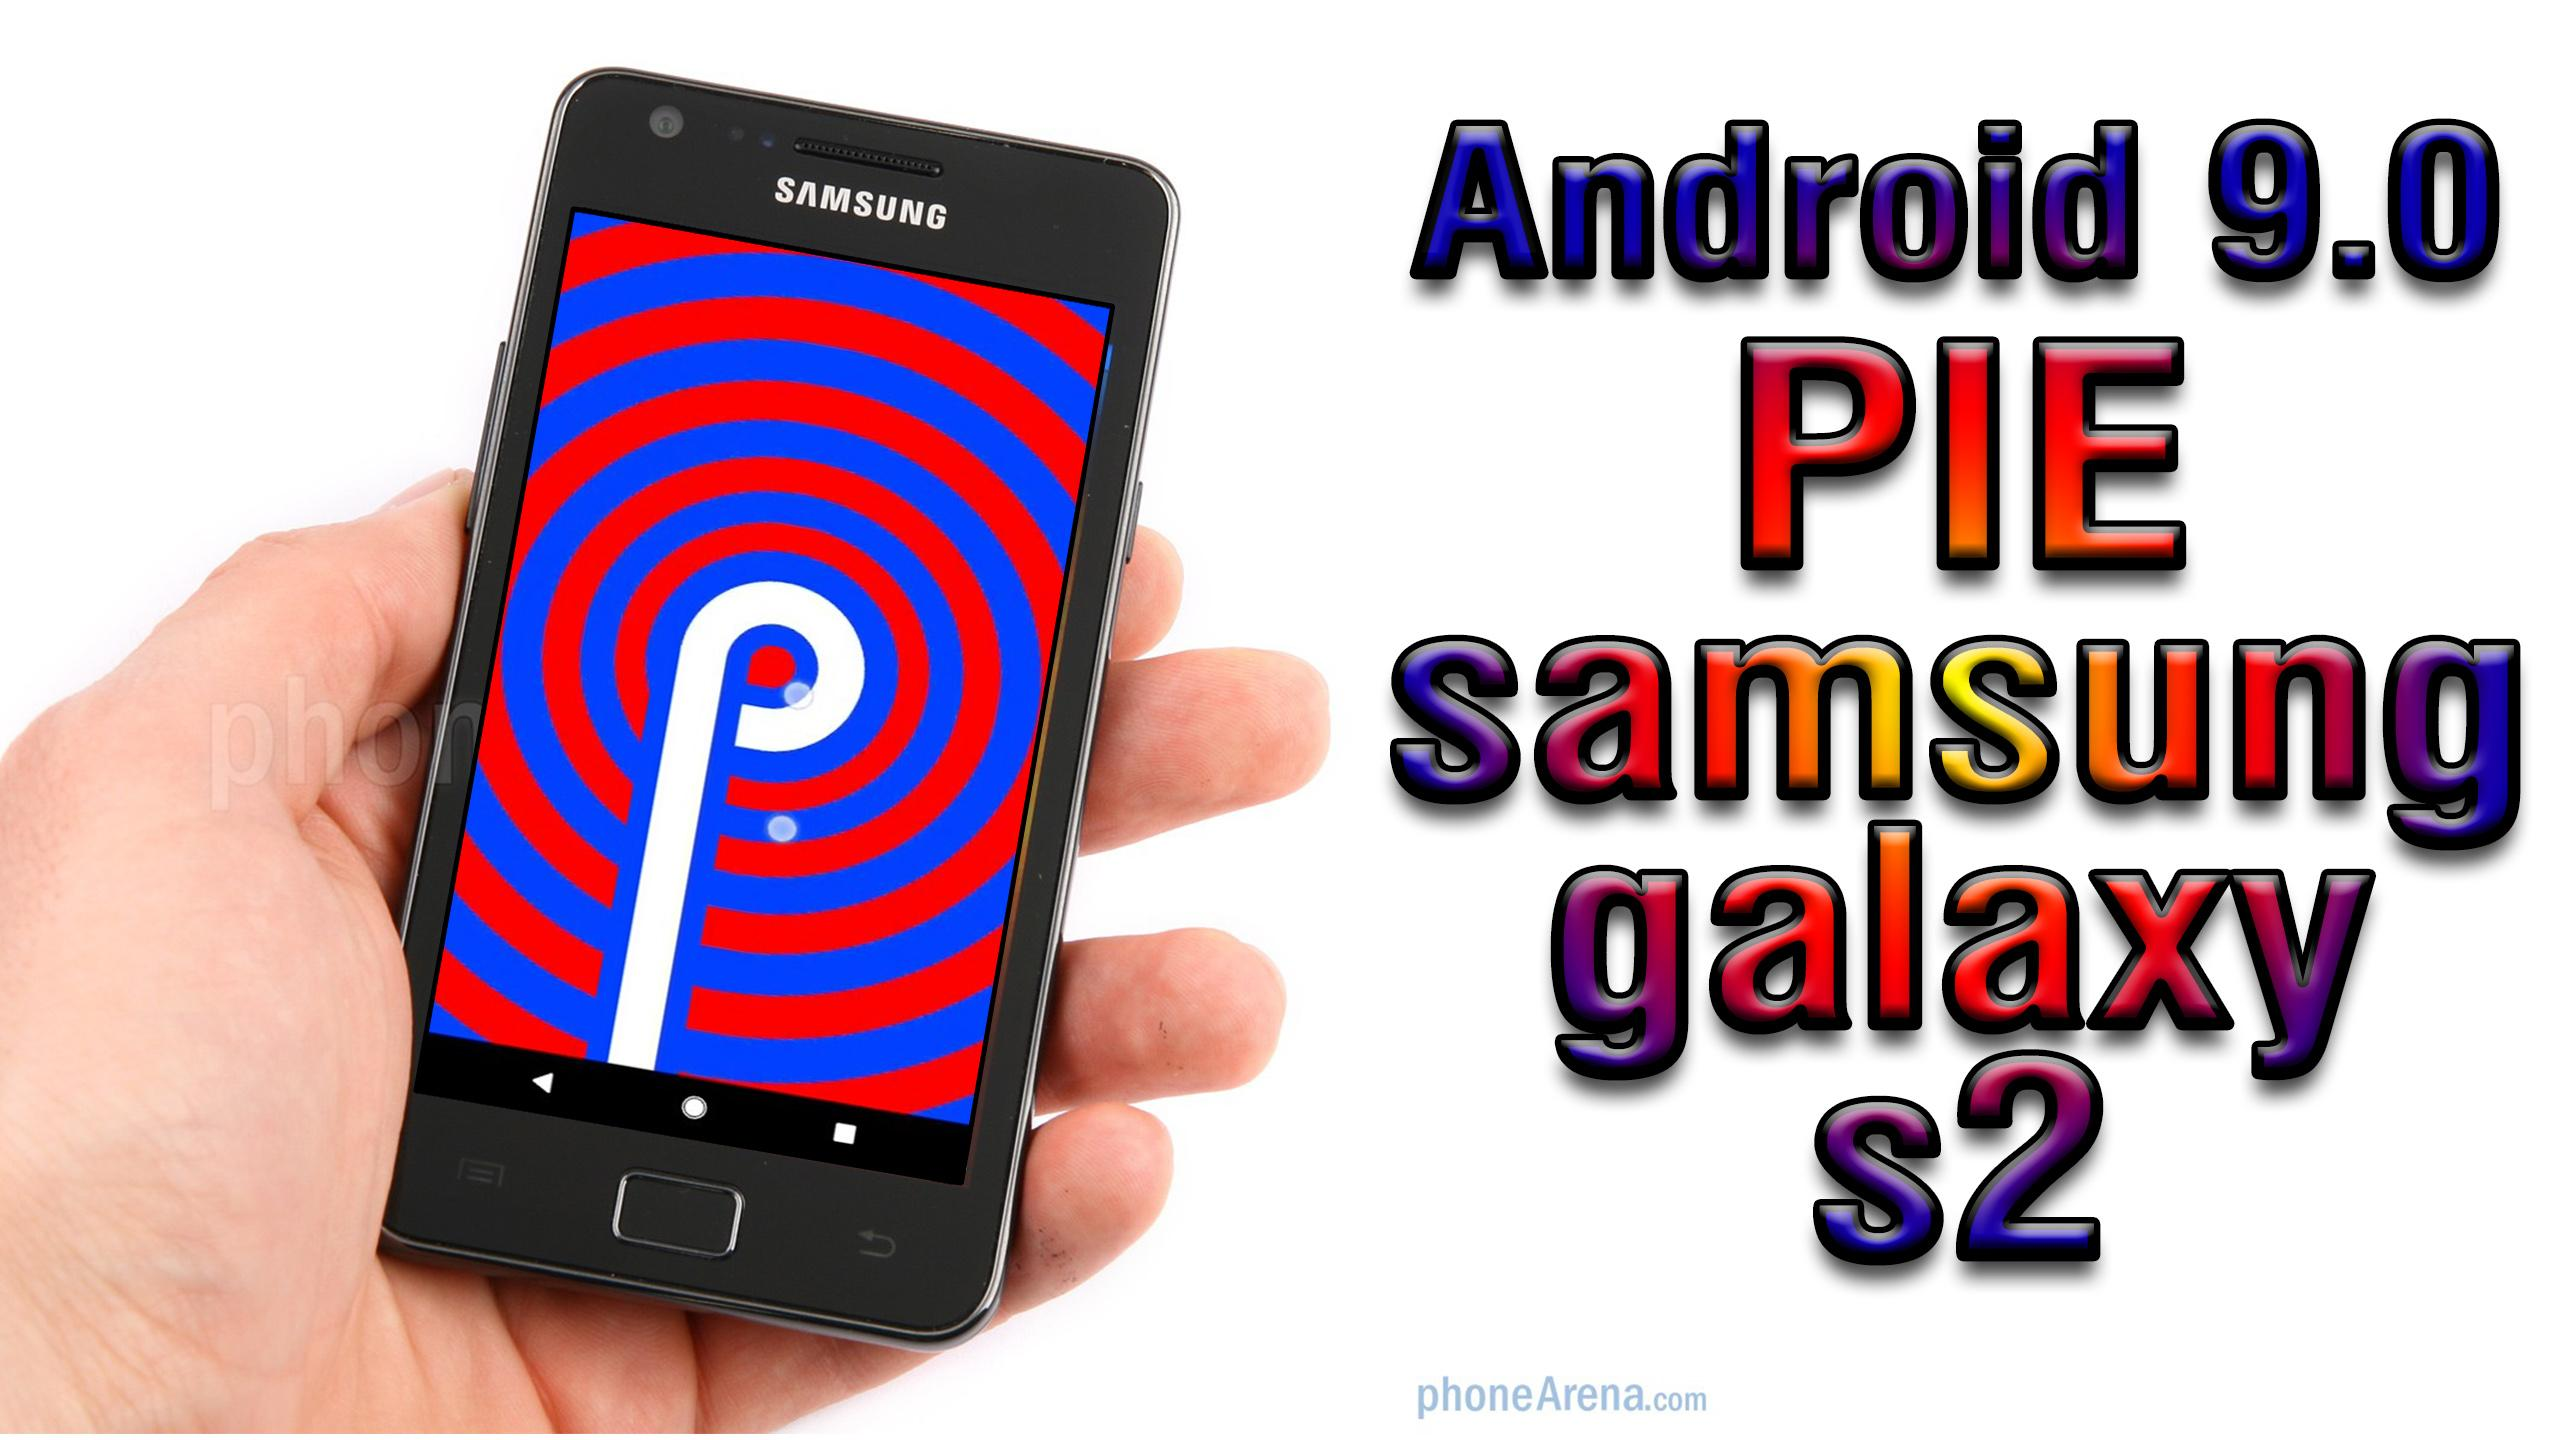 The next rom on the list is crdroid. Install Android 9.0 Pie on Samsung Galaxy S2 (LineageOS 16 ...